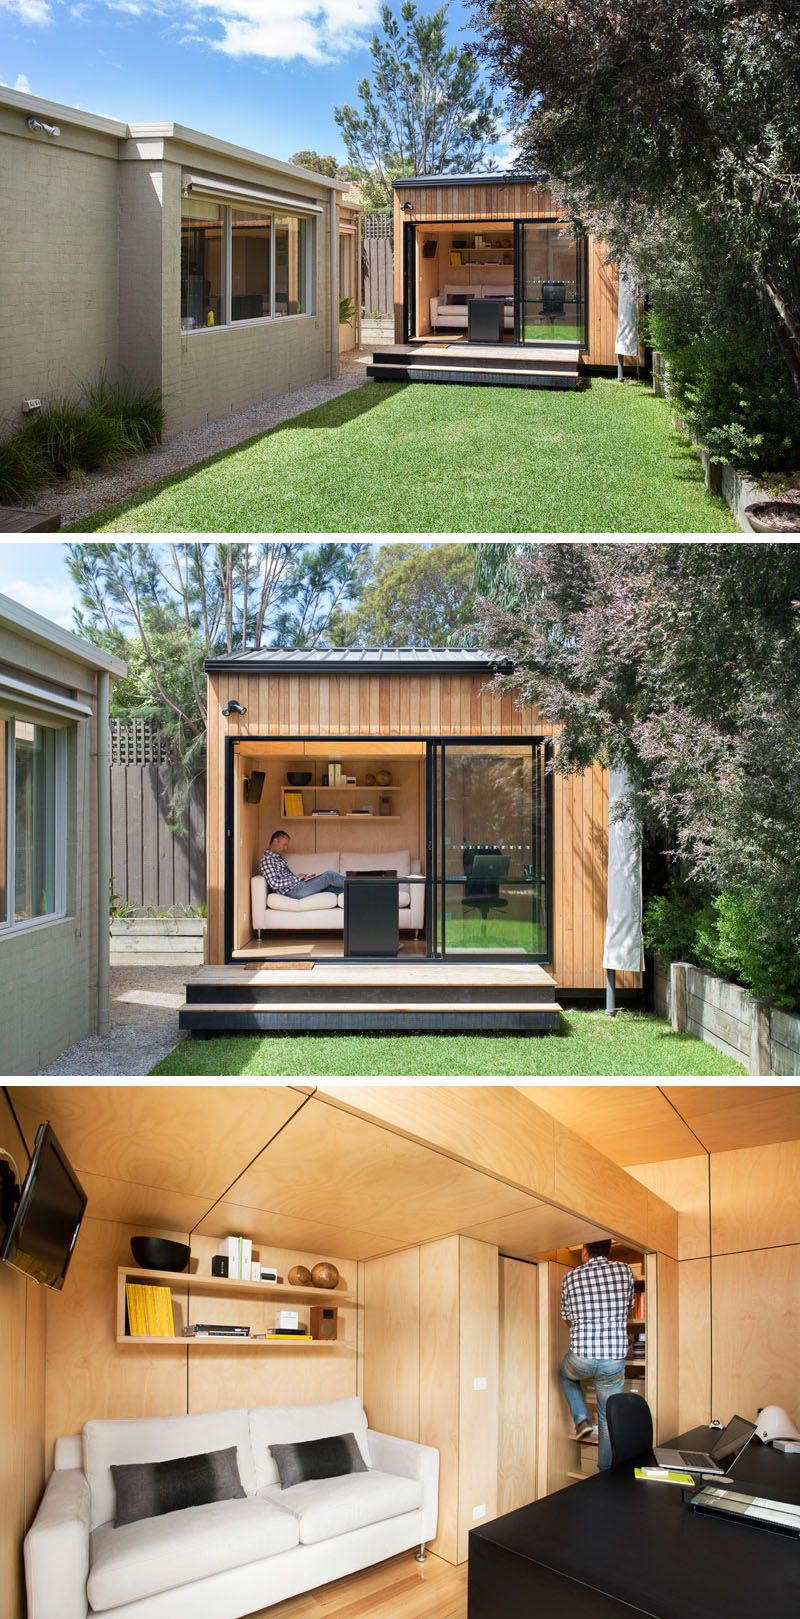 This small backyard studio has been carefully designed to accommodate a  couch, a work space, and a lofted sleeping area to create the ultimate  backyard ... - 14 Inspirational Backyard Offices, Studios And Guest Houses